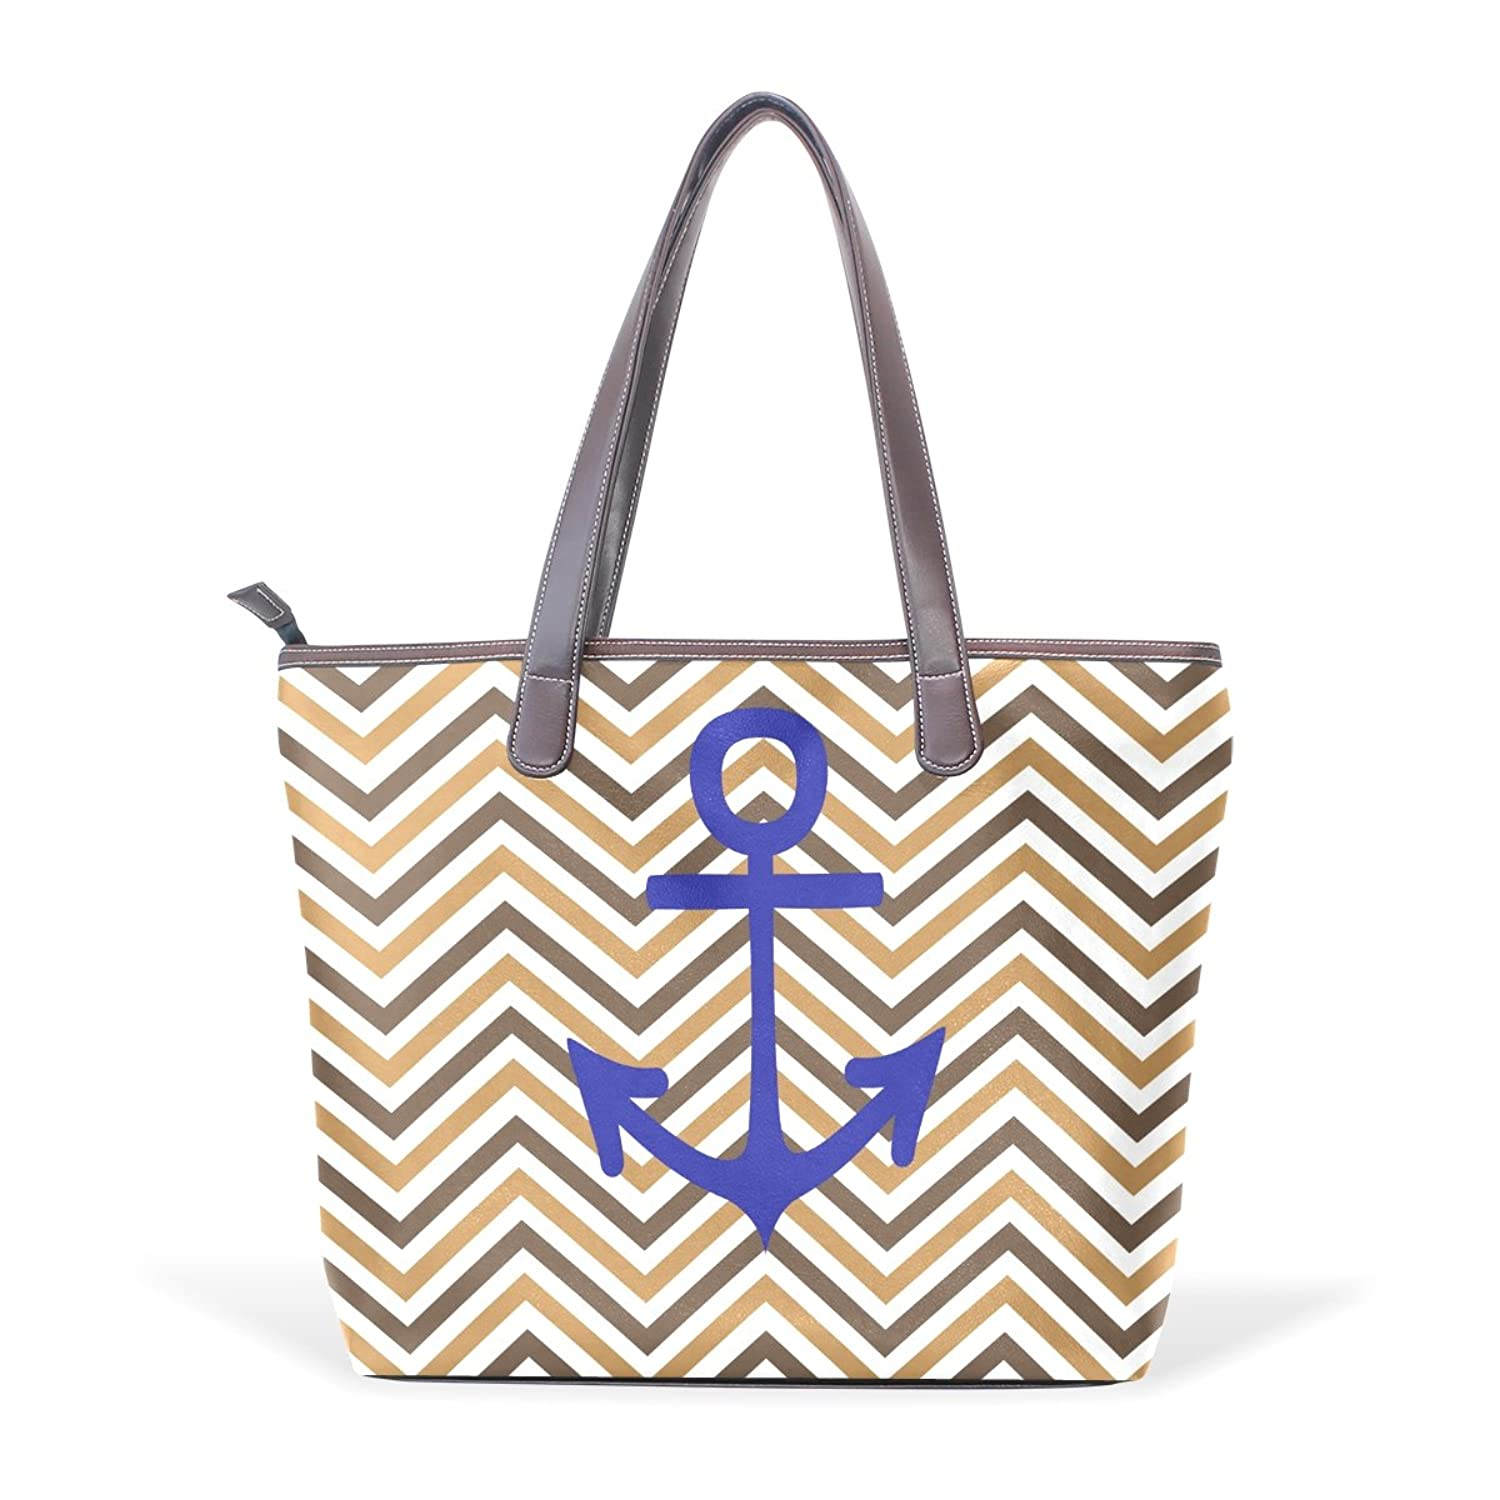 BYouLockX Brown Chevron And Anchor Pattern Leather Handbags Satchel ShoulderBag for Women